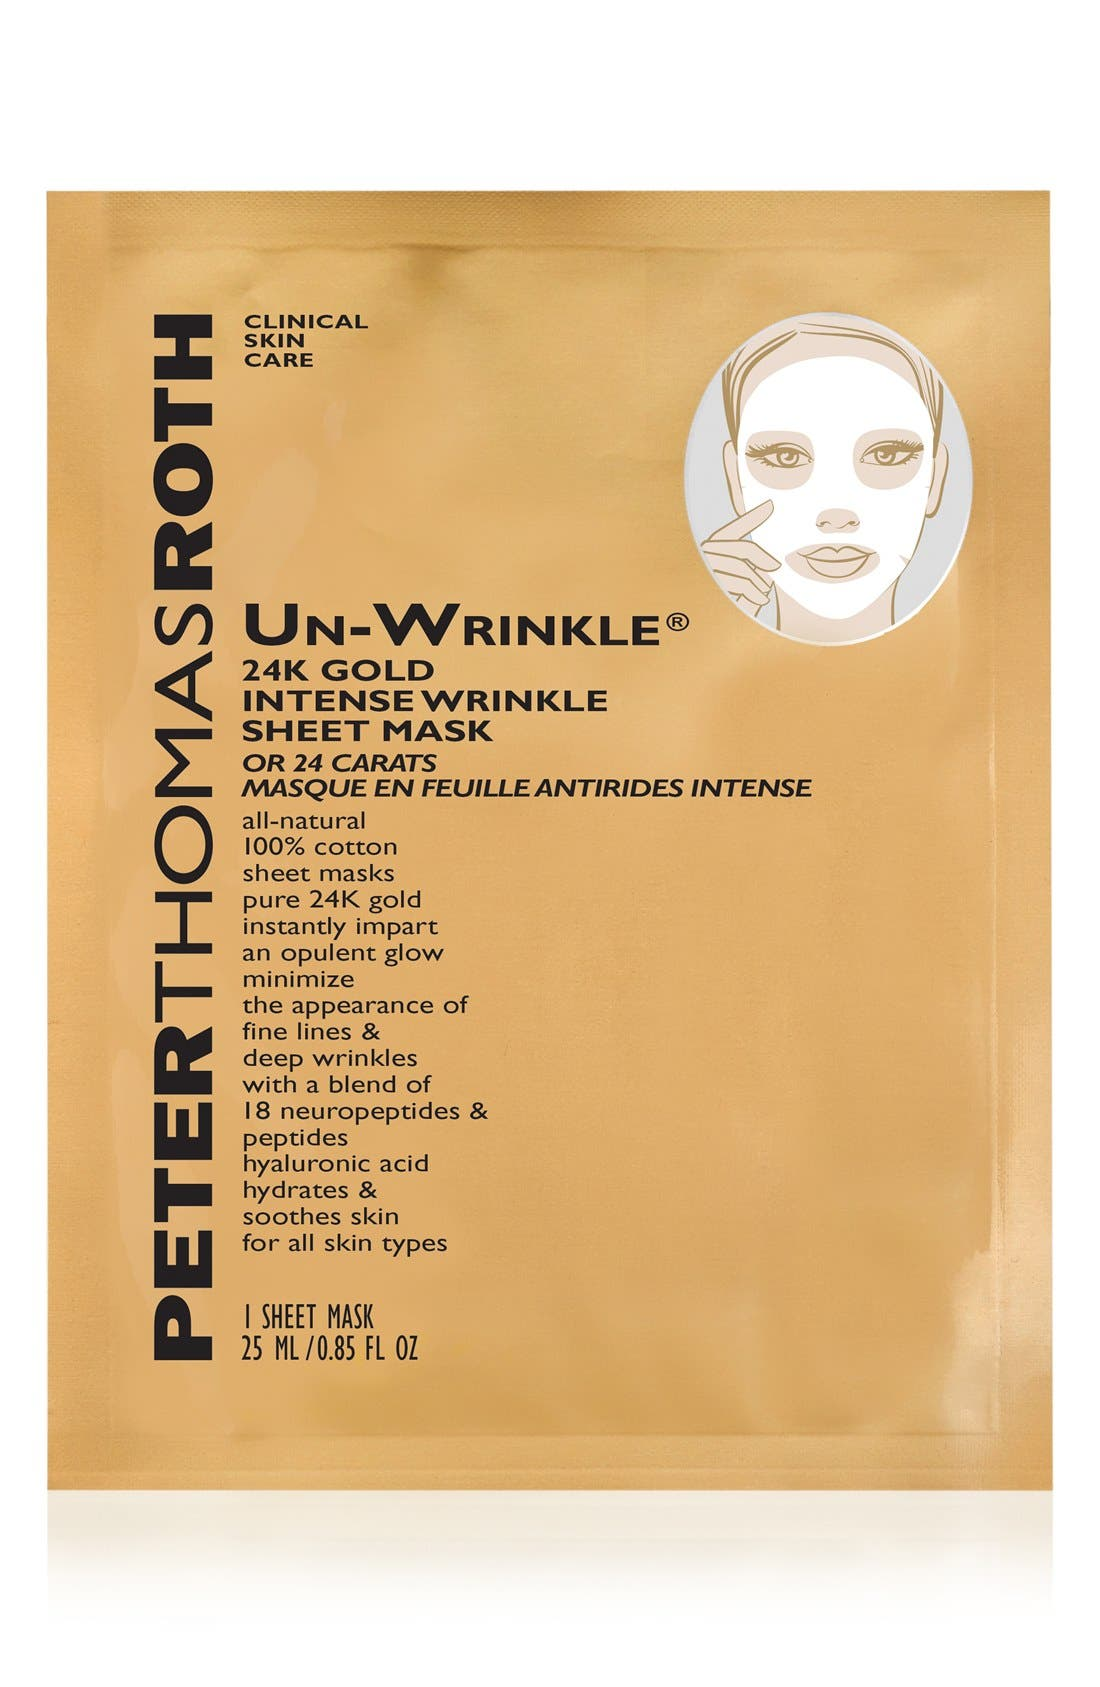 Peter Thomas Roth Un-Wrinkle® 24k Gold Intense Wrinkle Sheet Mask